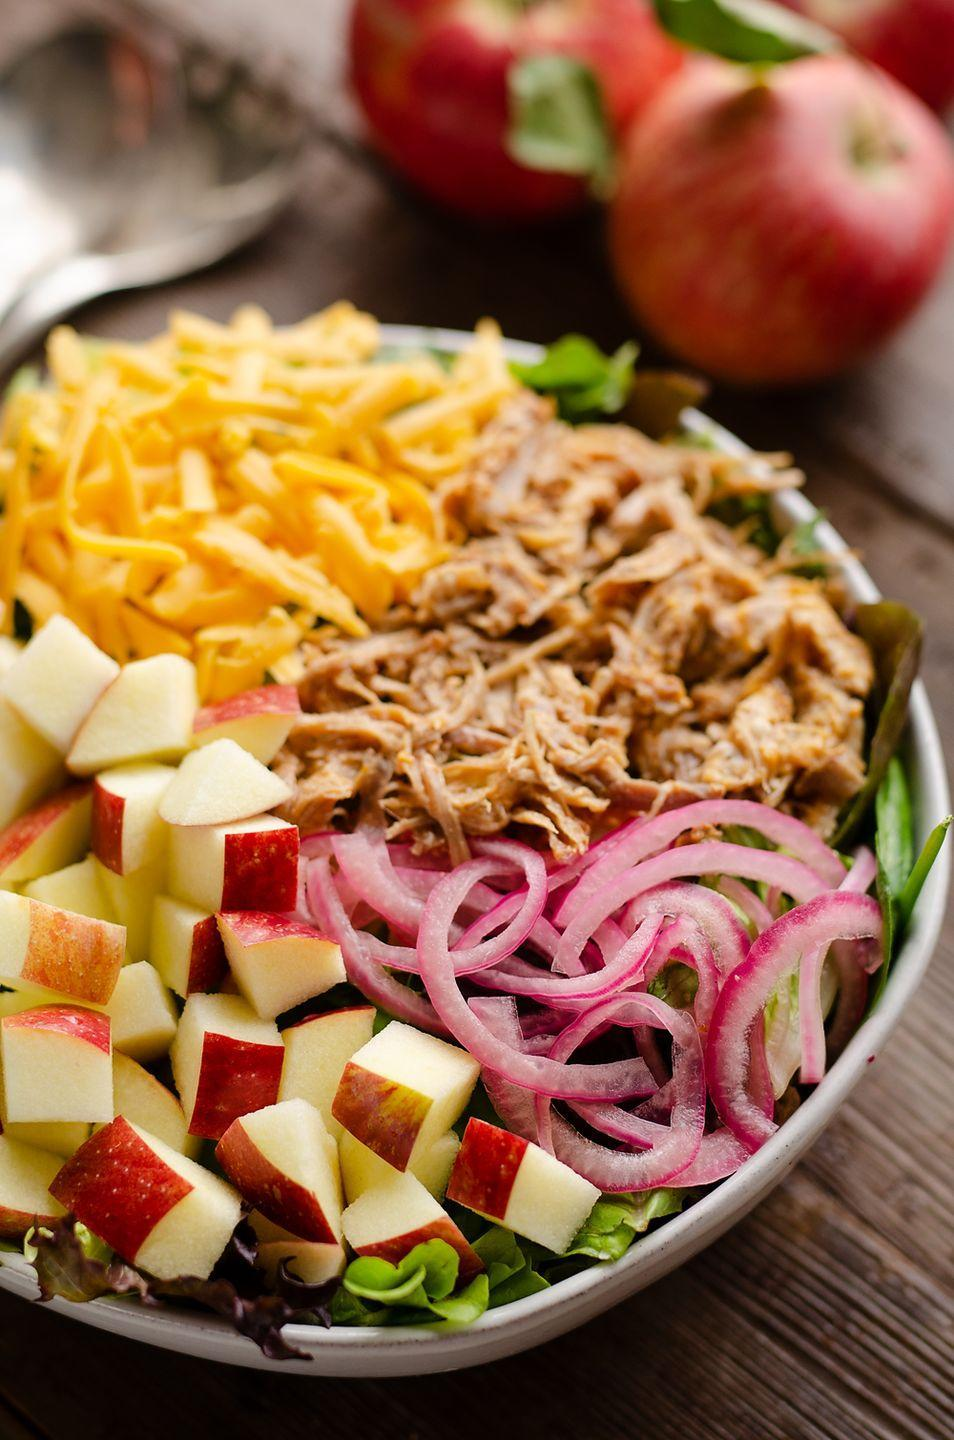 """<p>You can use leftover pulled pork to make a ton of great meals—including this light and flavorful fall salad. Pair it with leafy greens, crisp apples, and shredded cheese for an easy weeknight dinner. </p><p><strong>Get the recipe at <a href=""""https://www.thecreativebite.com/pulled-pork-apple-salad/"""" rel=""""nofollow noopener"""" target=""""_blank"""" data-ylk=""""slk:The Creative Bite"""" class=""""link rapid-noclick-resp"""">The Creative Bite</a>. </strong></p><p><a class=""""link rapid-noclick-resp"""" href=""""https://go.redirectingat.com?id=74968X1596630&url=https%3A%2F%2Fwww.walmart.com%2Fsearch%2F%3Fquery%3Dpressure%2Bcooker&sref=https%3A%2F%2Fwww.thepioneerwoman.com%2Ffood-cooking%2Fmeals-menus%2Fg36806222%2Ffall-salad-recipes%2F"""" rel=""""nofollow noopener"""" target=""""_blank"""" data-ylk=""""slk:SHOP PRESSURE COOKERS"""">SHOP PRESSURE COOKERS</a></p>"""